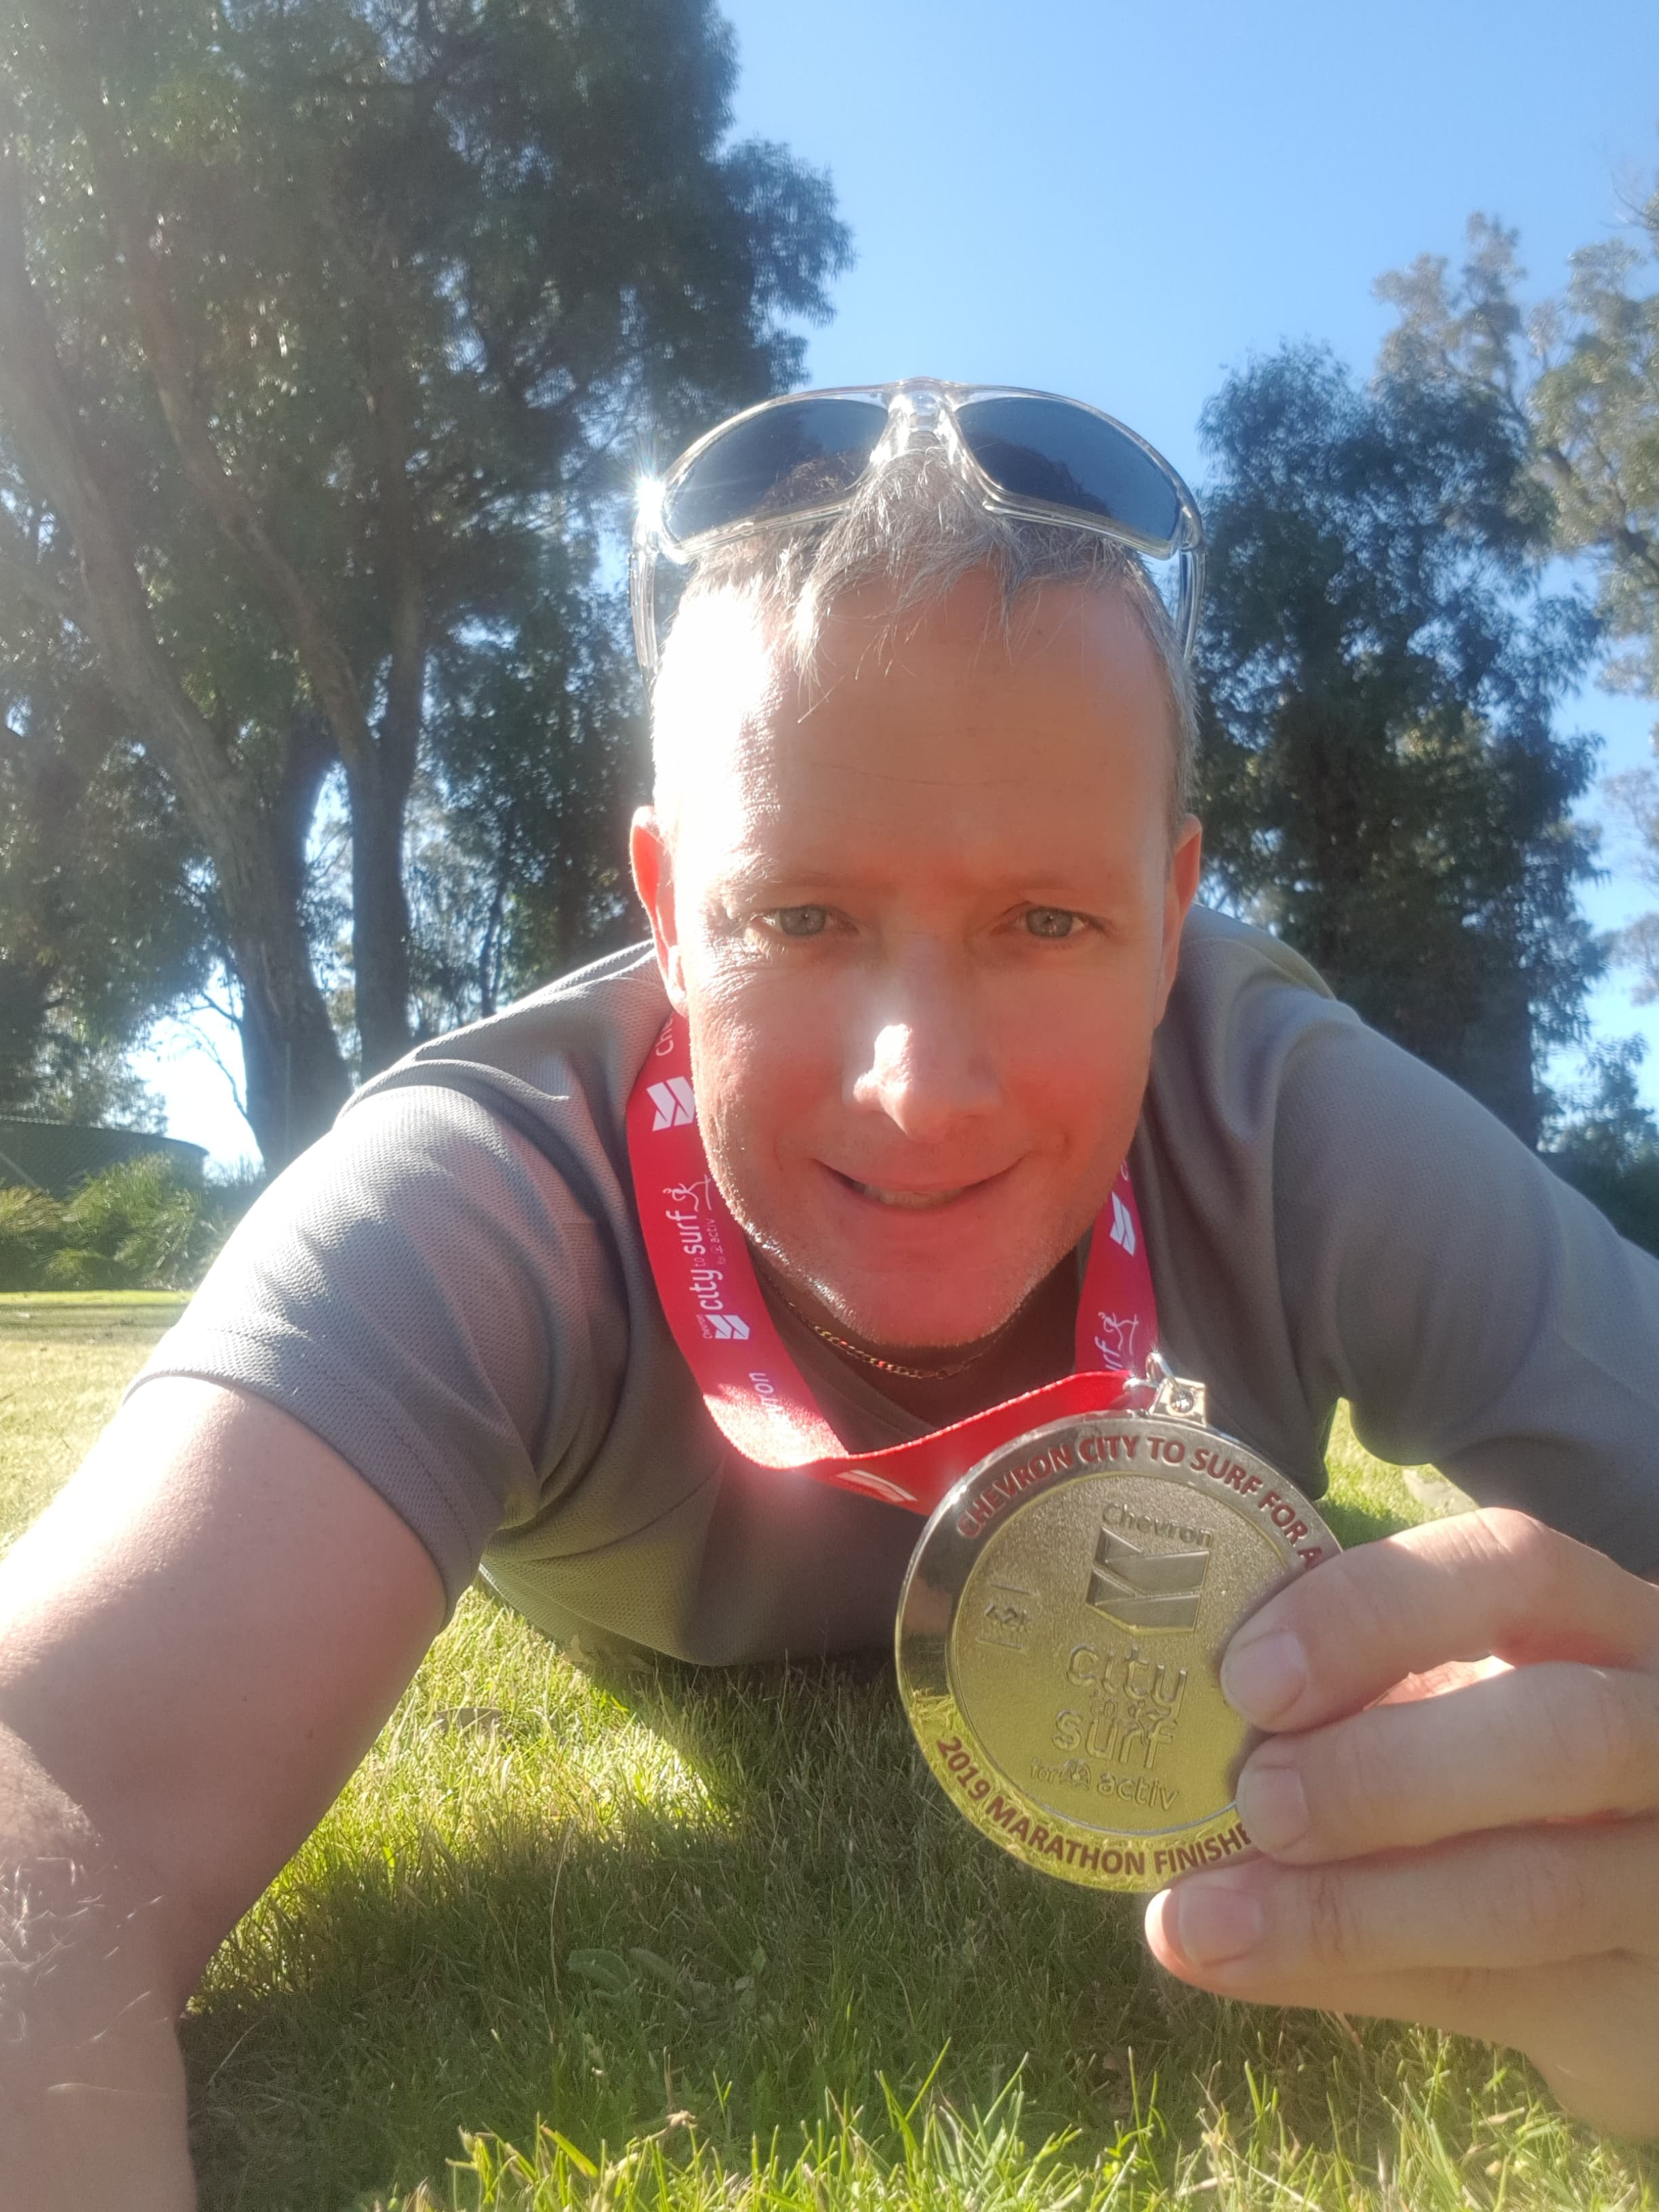 runnovation medallist with his medal